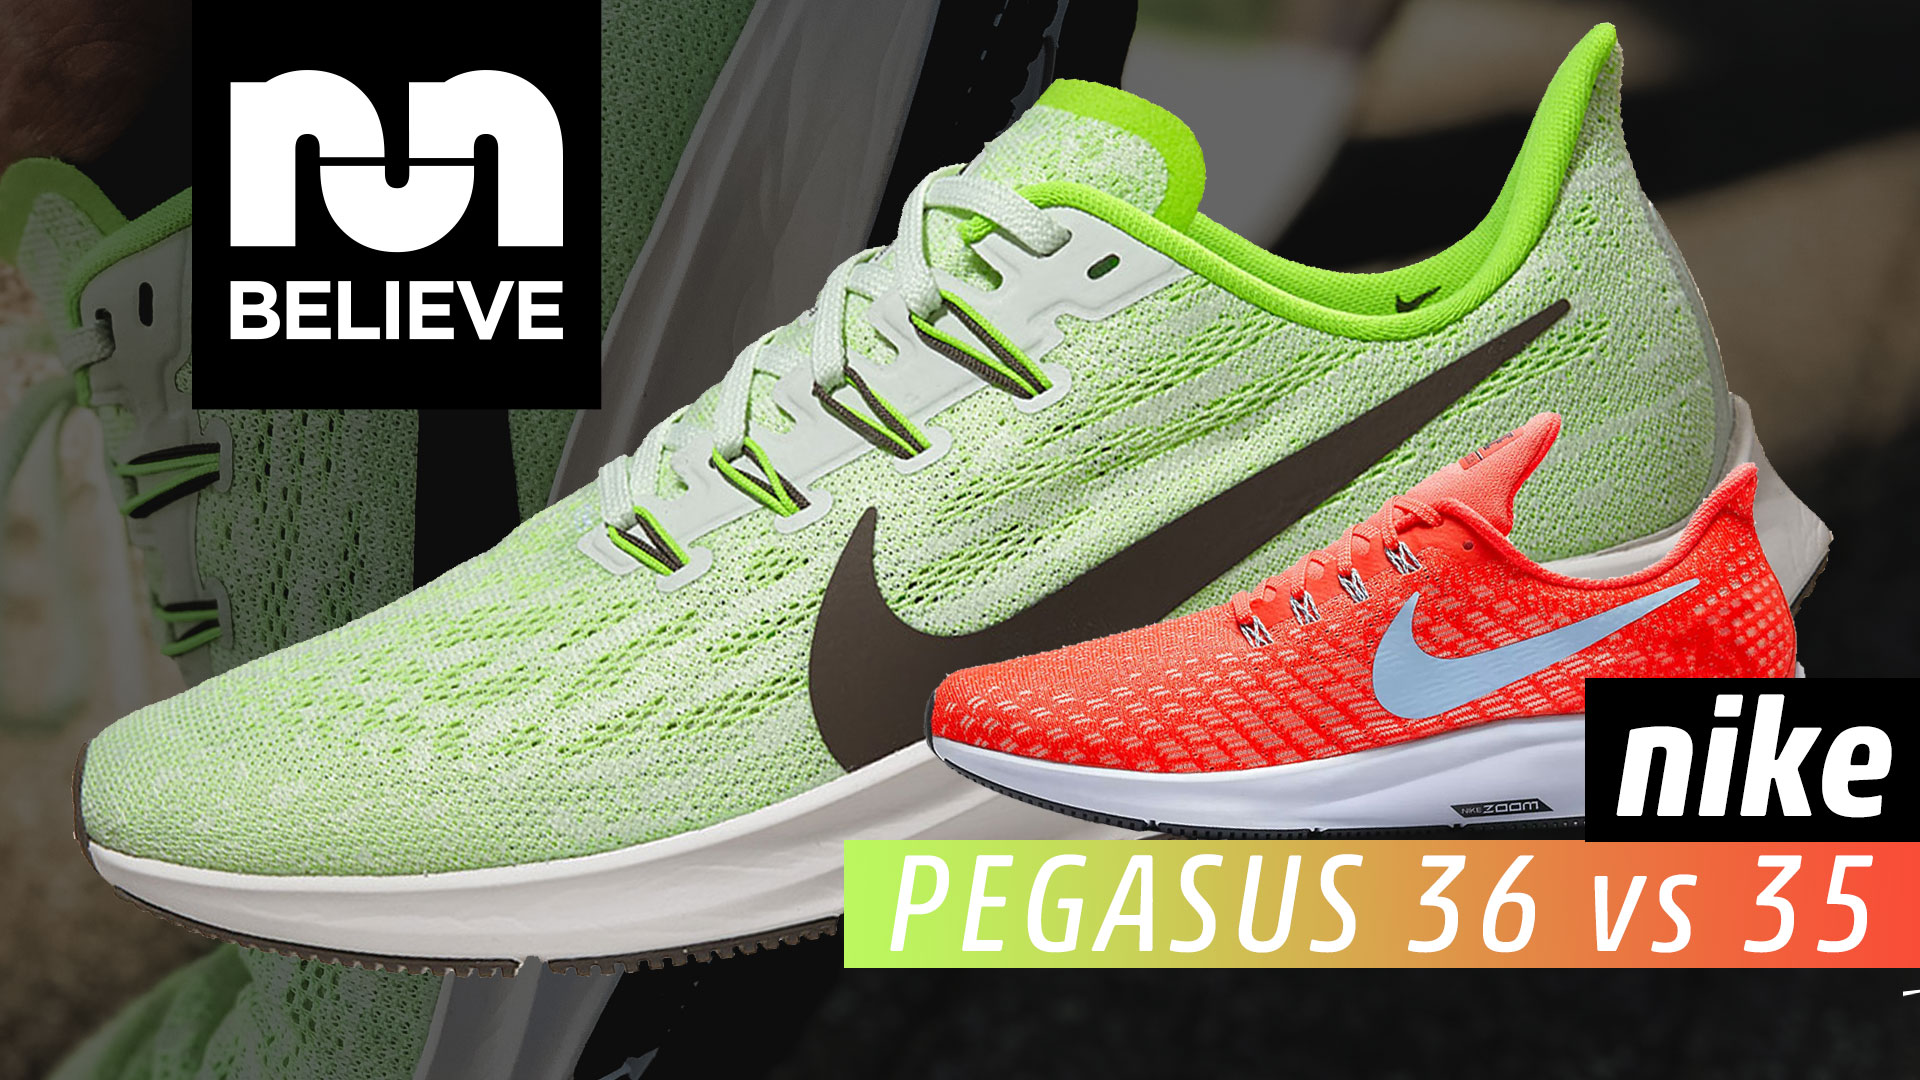 best service 453ff a4578 Nike Pegasus 36 vs Pegasus 35 Comparison Review » Believe in ...